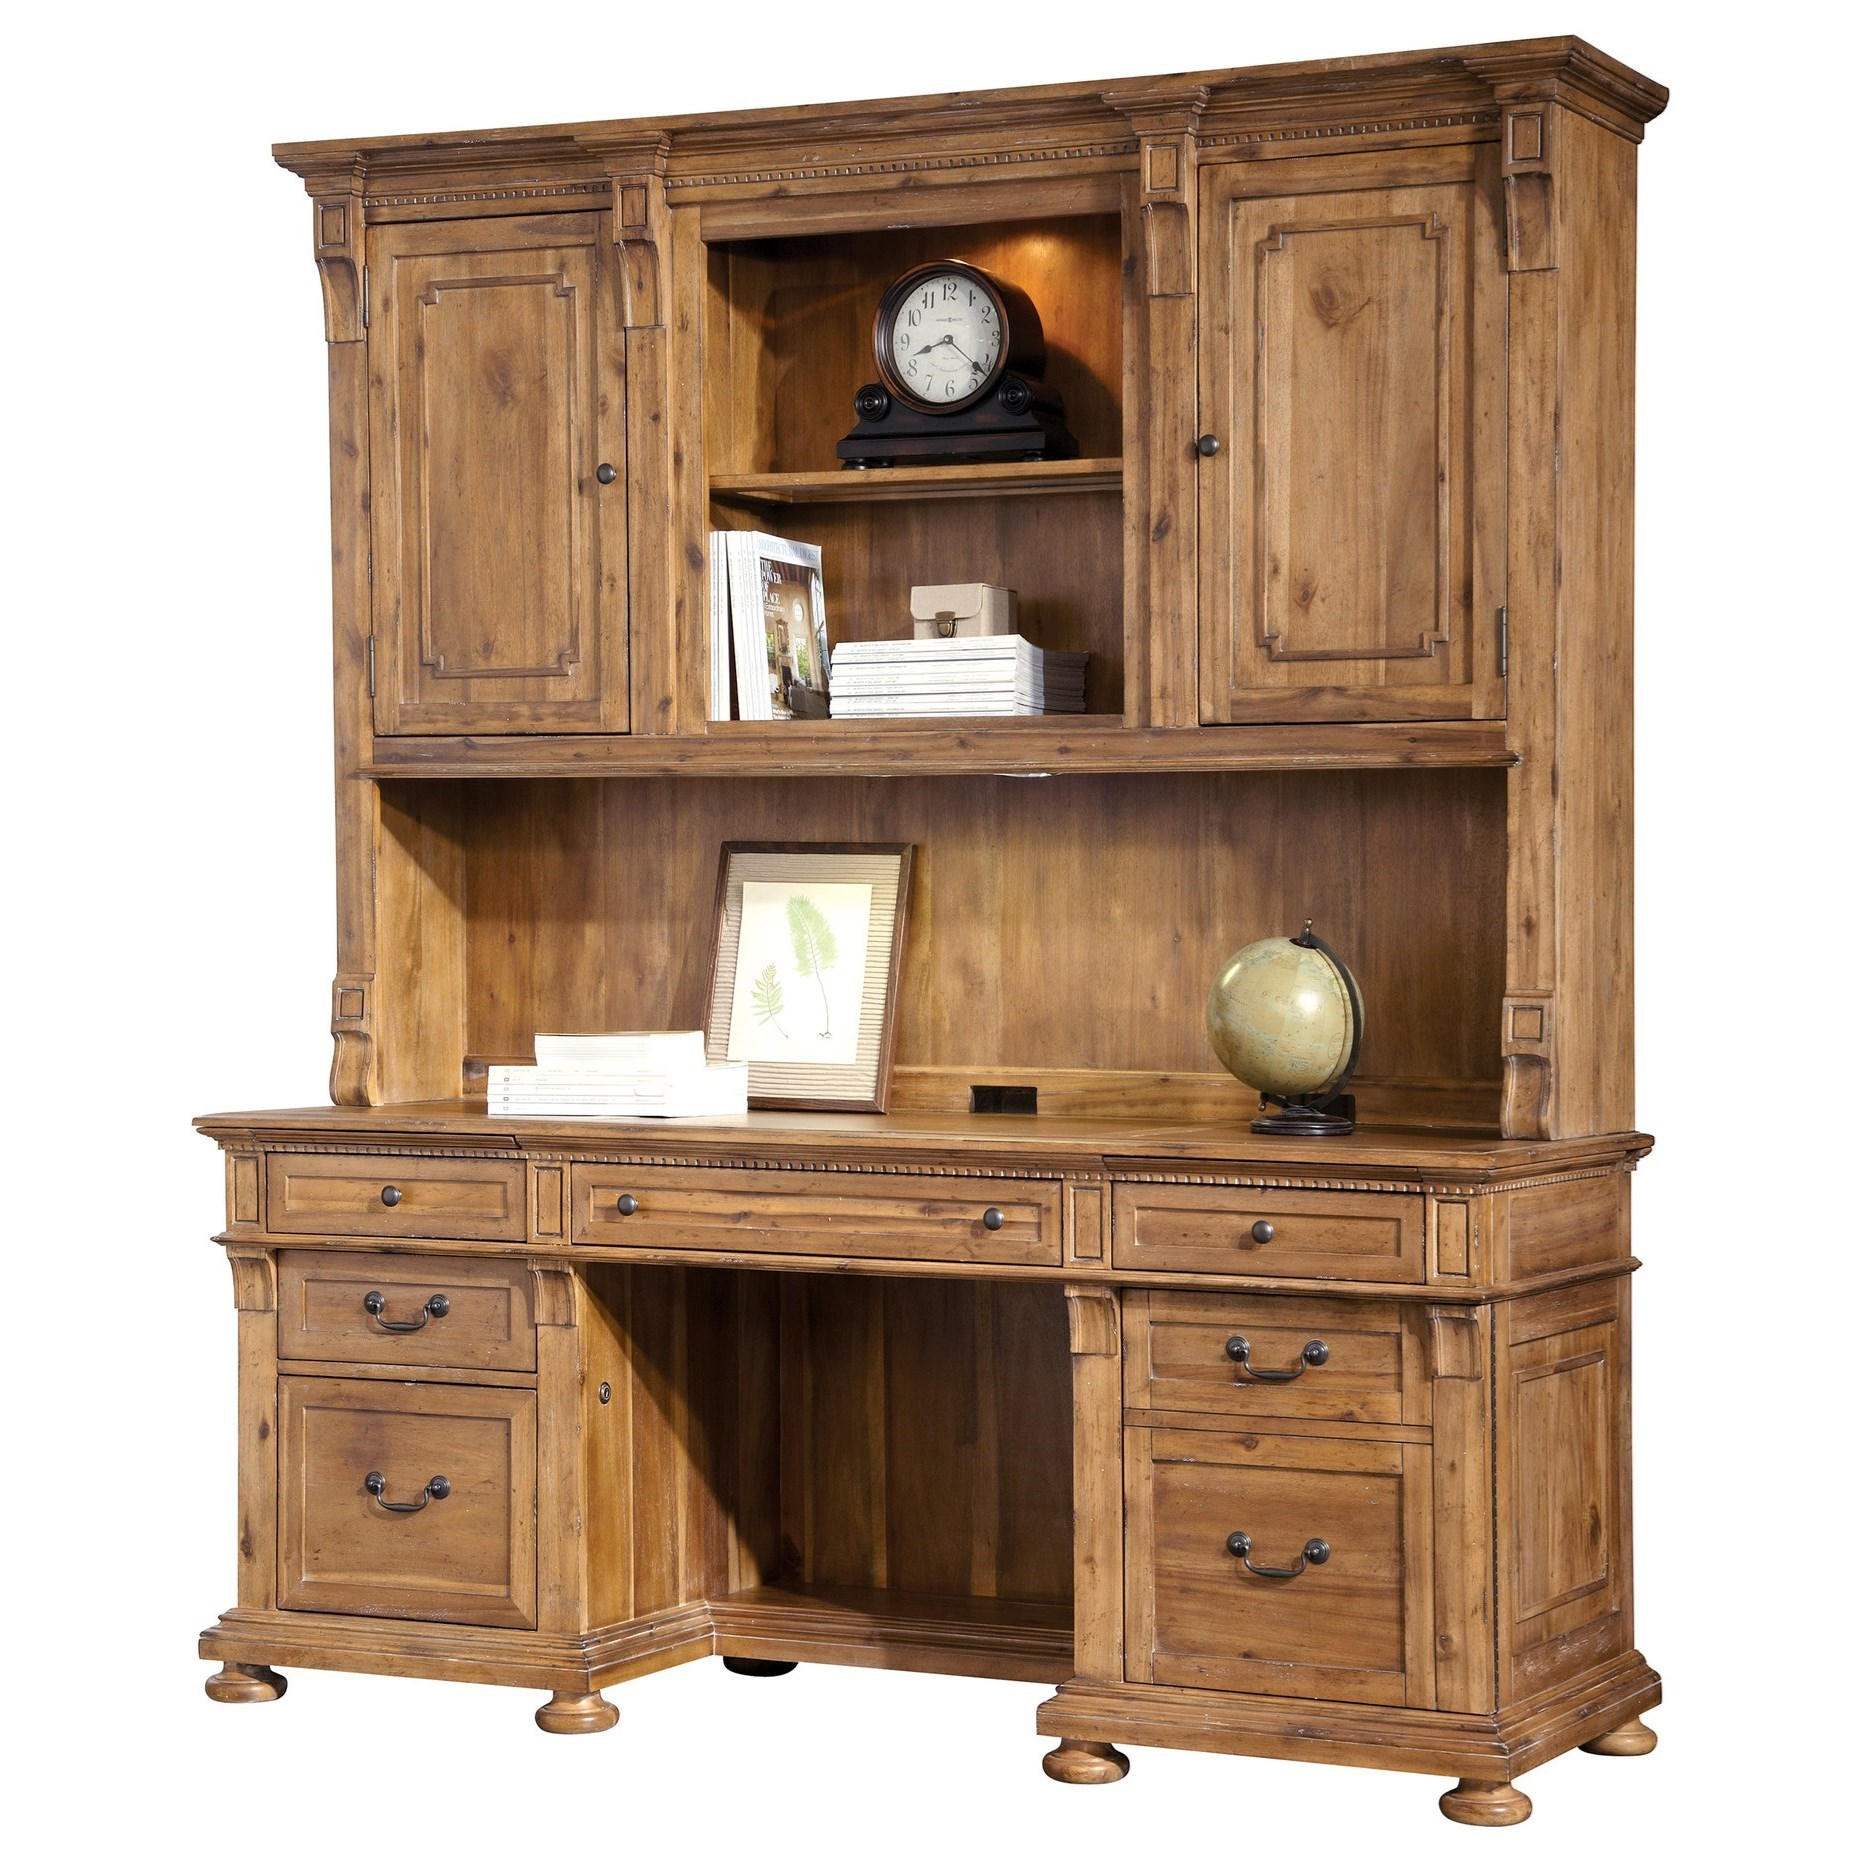 Office Express Executive Credenza and Deck by Hekman at Wayside Furniture